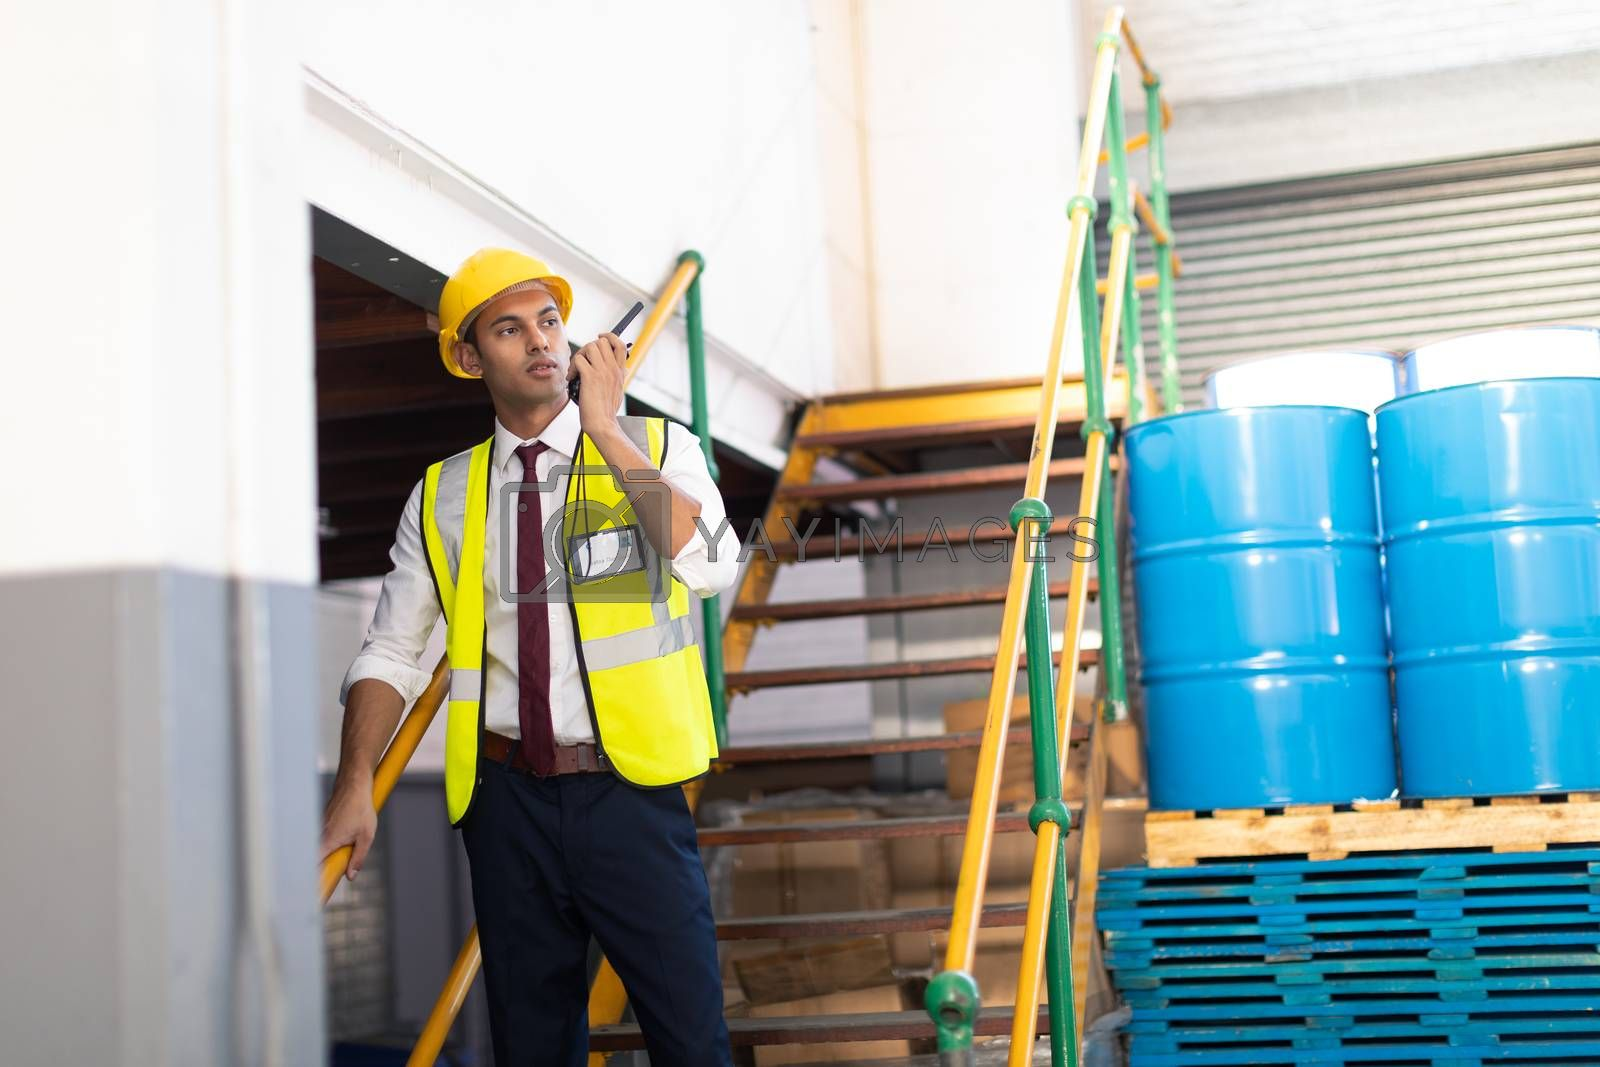 Front view of Caucasian male supervisor talking on talkie walkie on stairs in warehouse. This is a freight transportation and distribution warehouse. Industrial and industrial workers concept